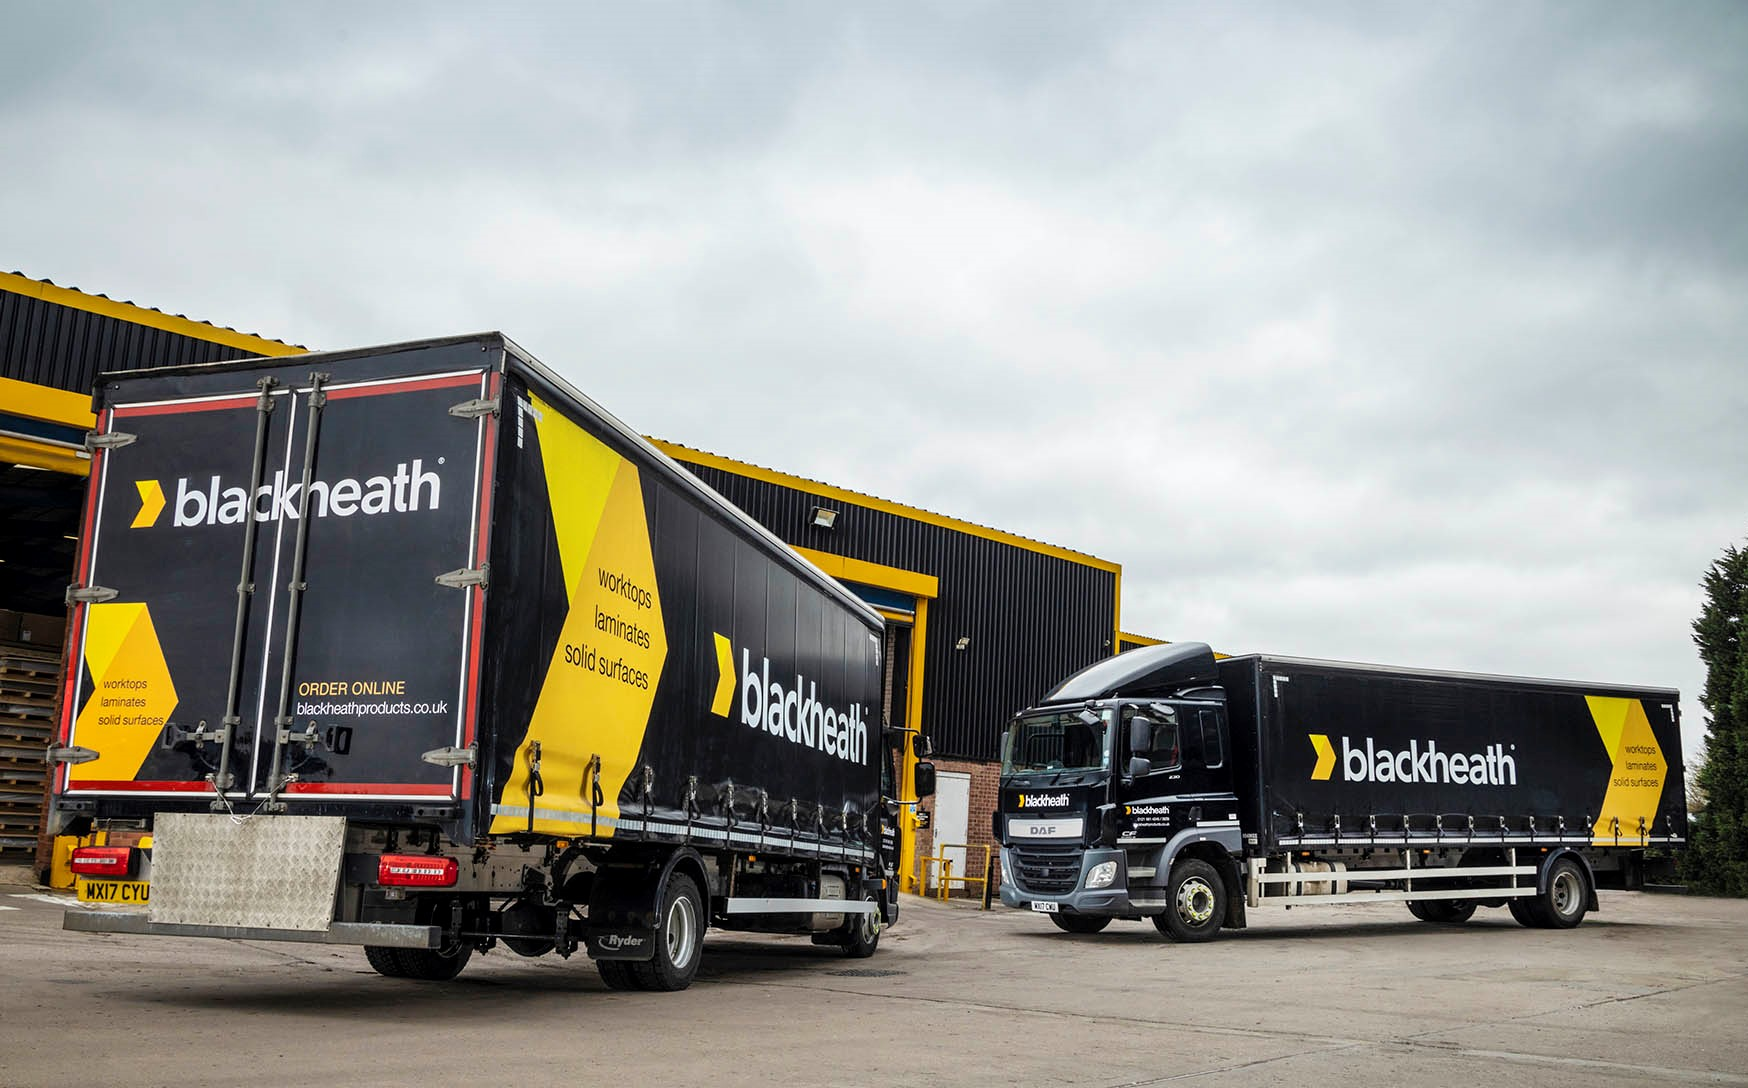 Our trucks have a smart new look